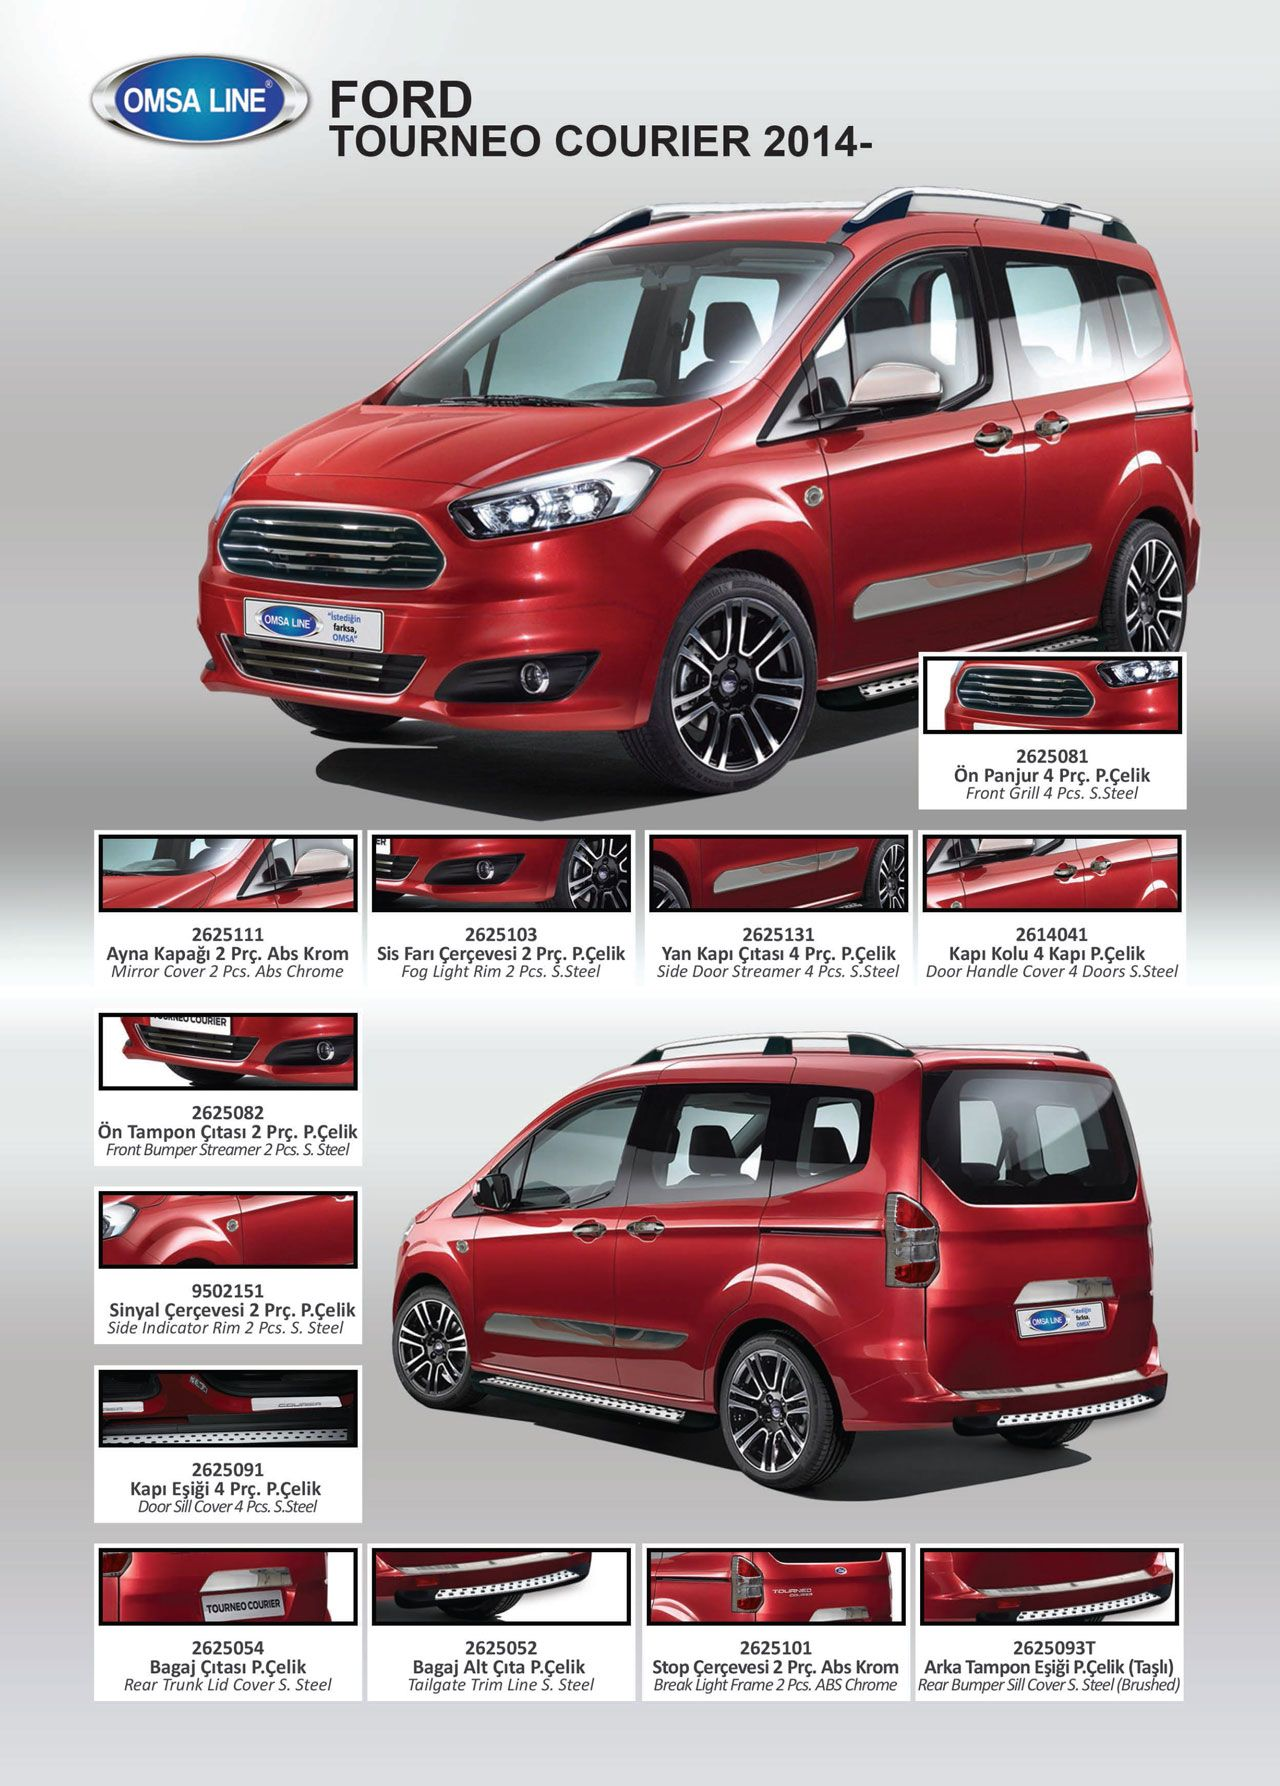 Ford tourneo courier pictures to pin on pinterest - Ford Courier Aksesuarlar